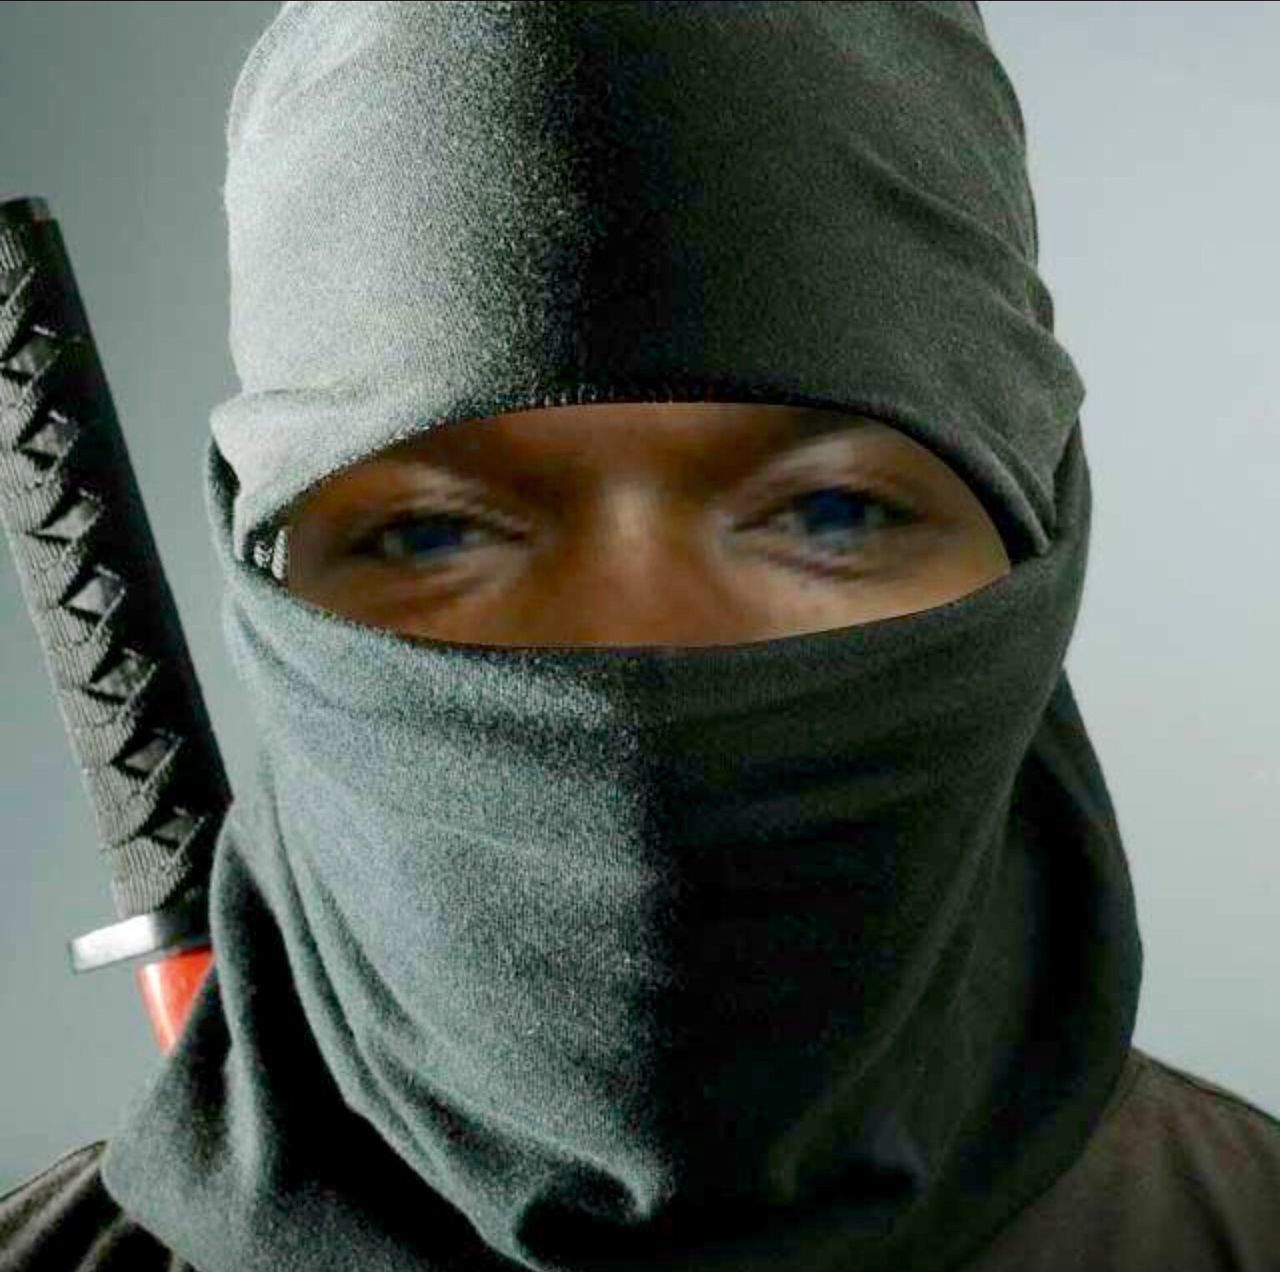 Check This Out I'm A Ninja. Sharp Sword Shaolin Master Of Disguise